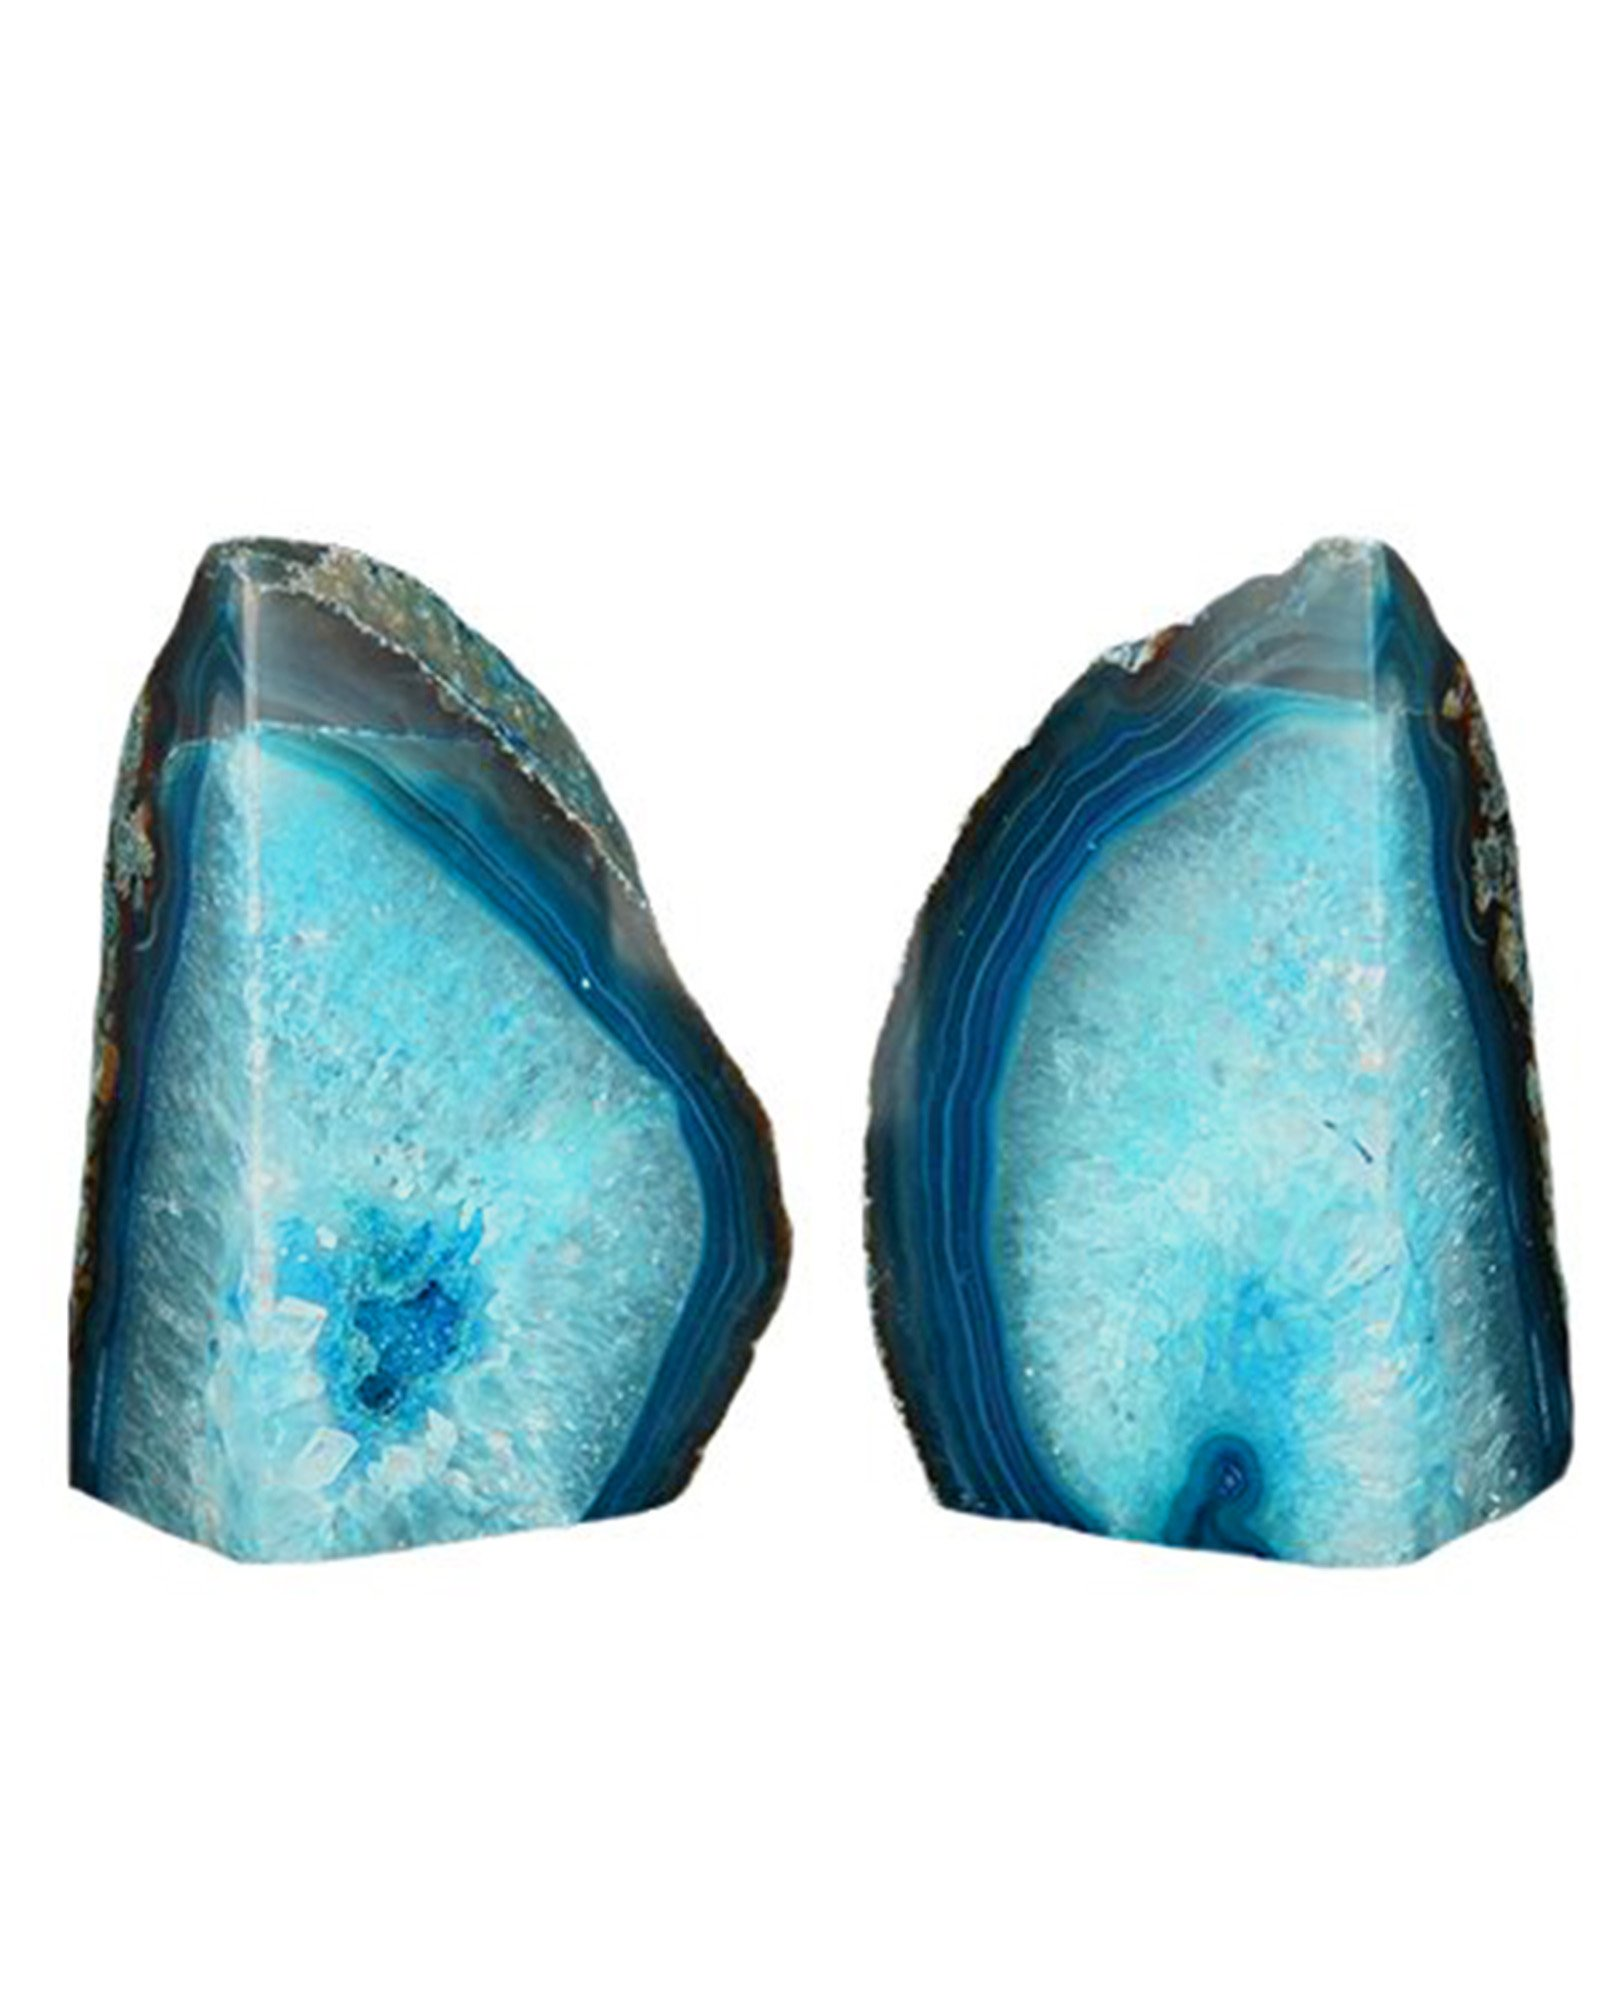 AMOYSTONE Dyed Teal/Aqua Agate Bookends Pair 4-6 lbs Study Room Office Books Rack